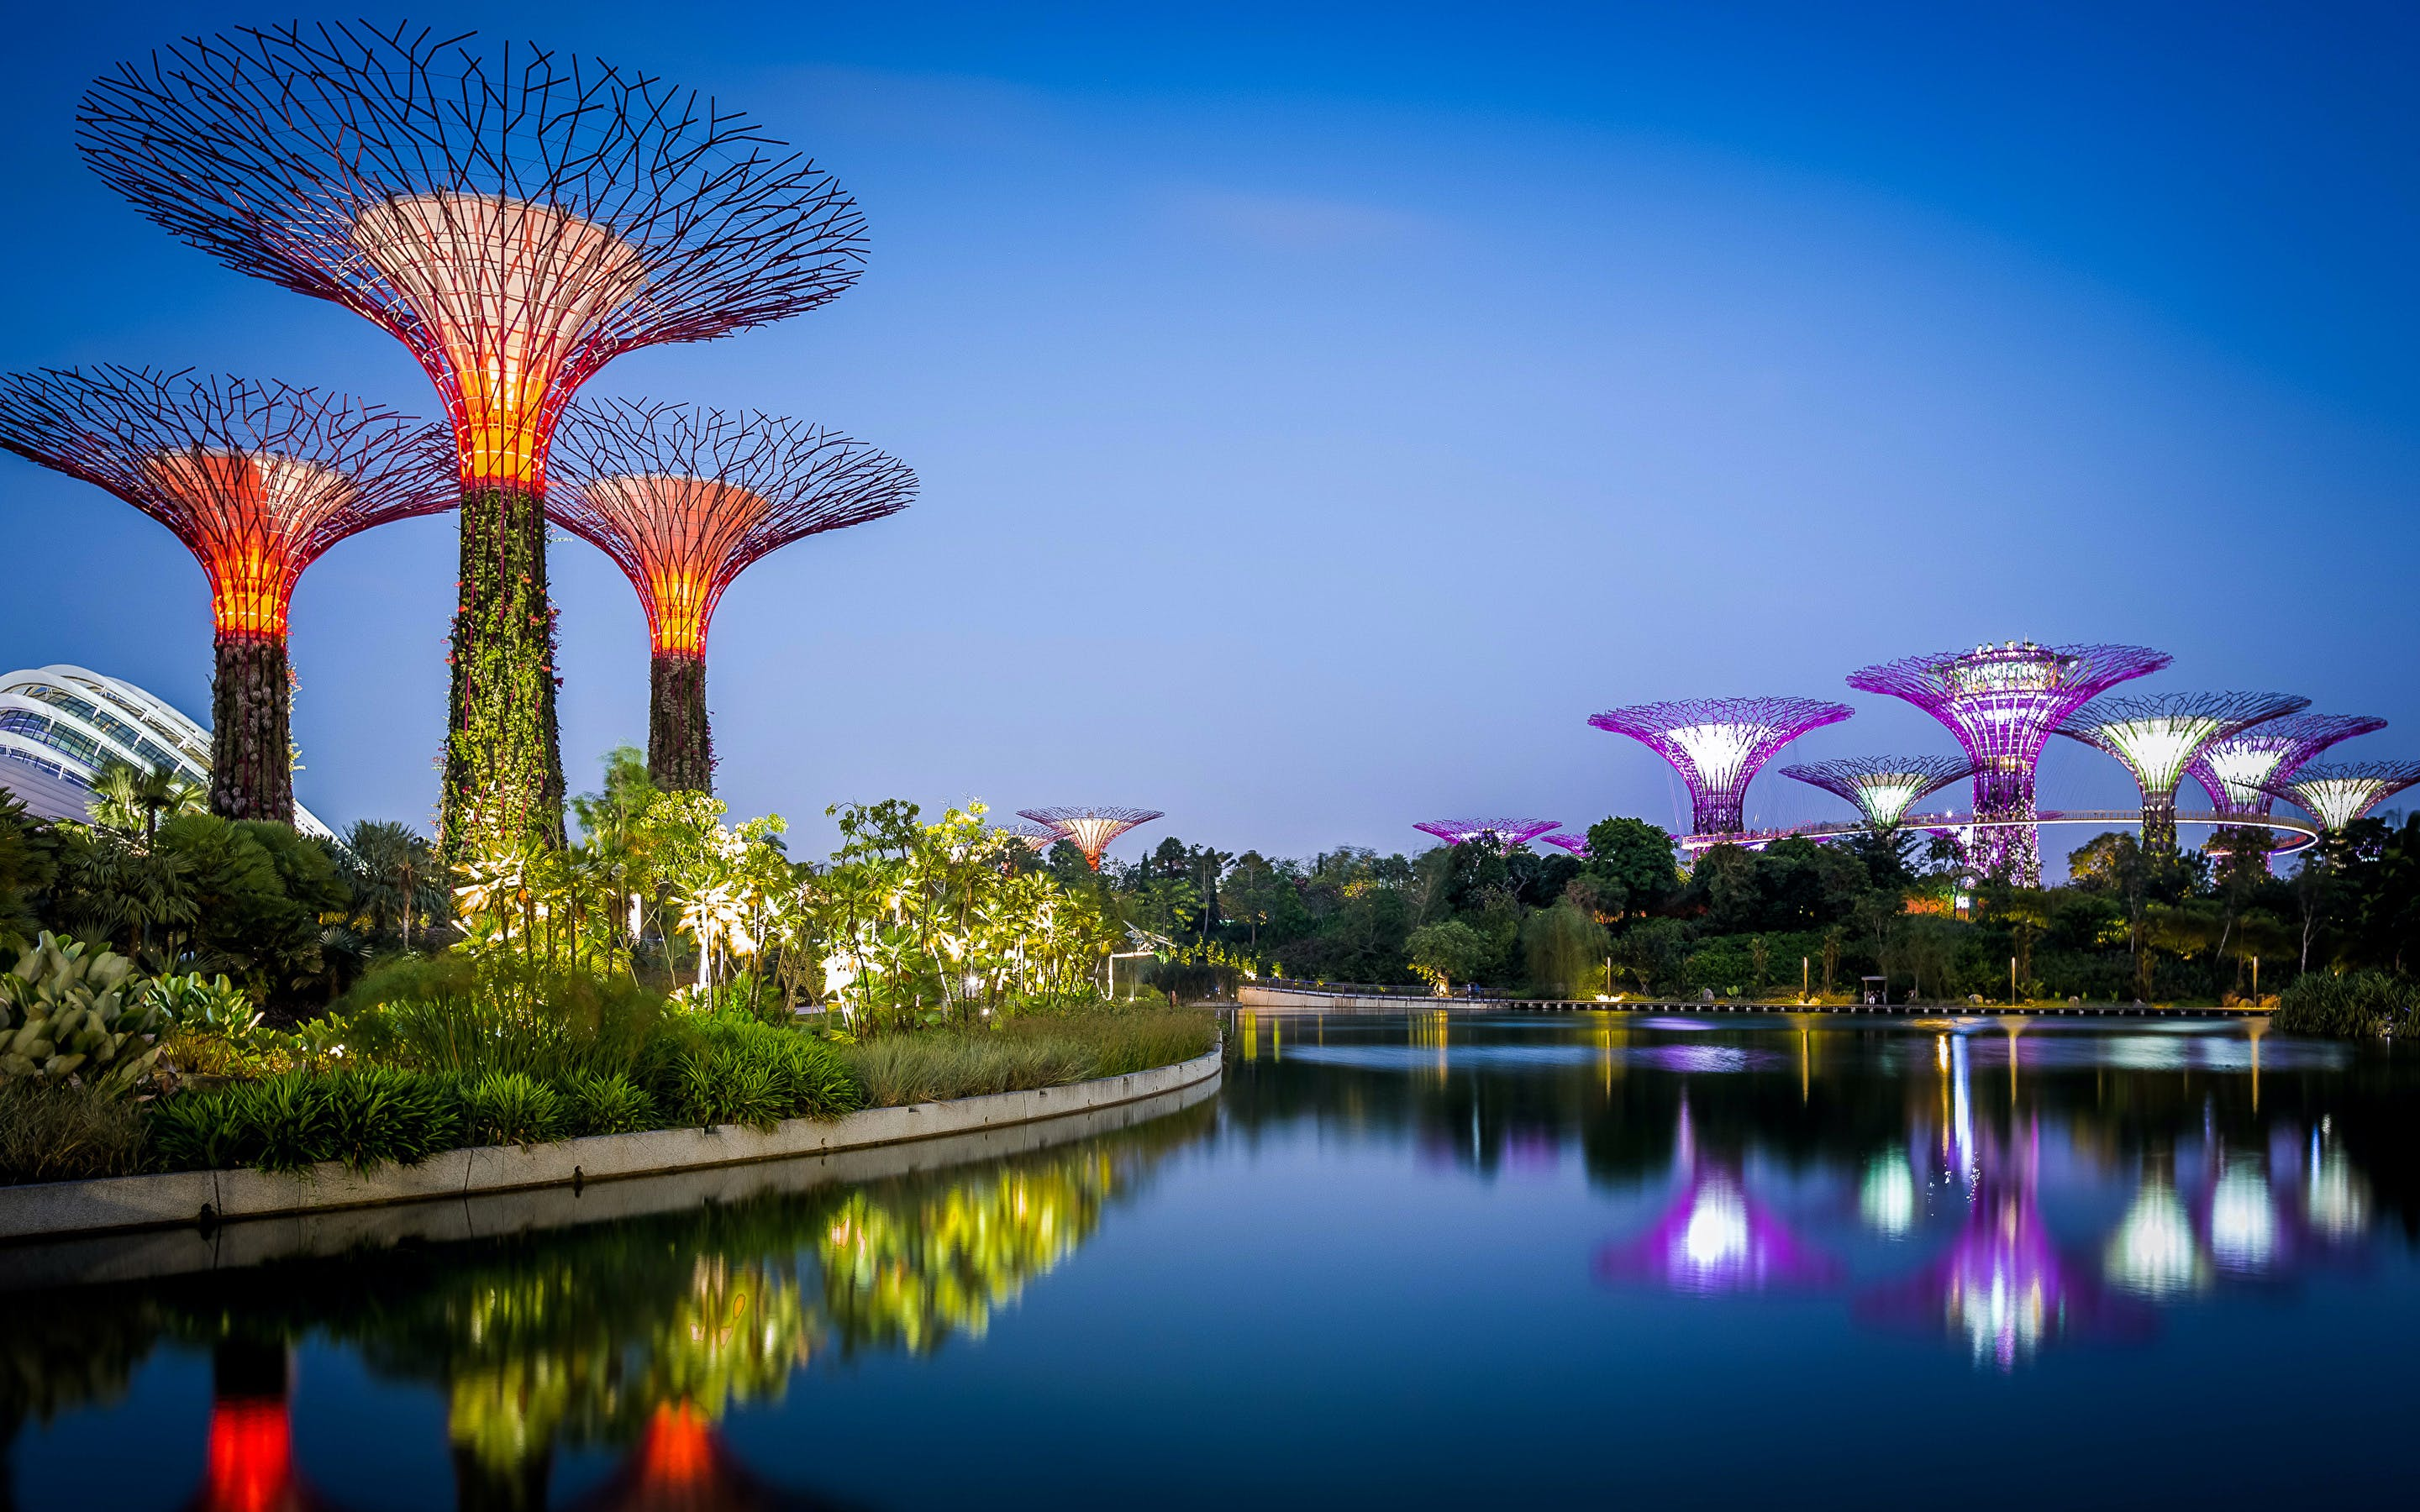 Tickets con Entrada Directa para Gardens by the Bay (Jardines de la Bahía)